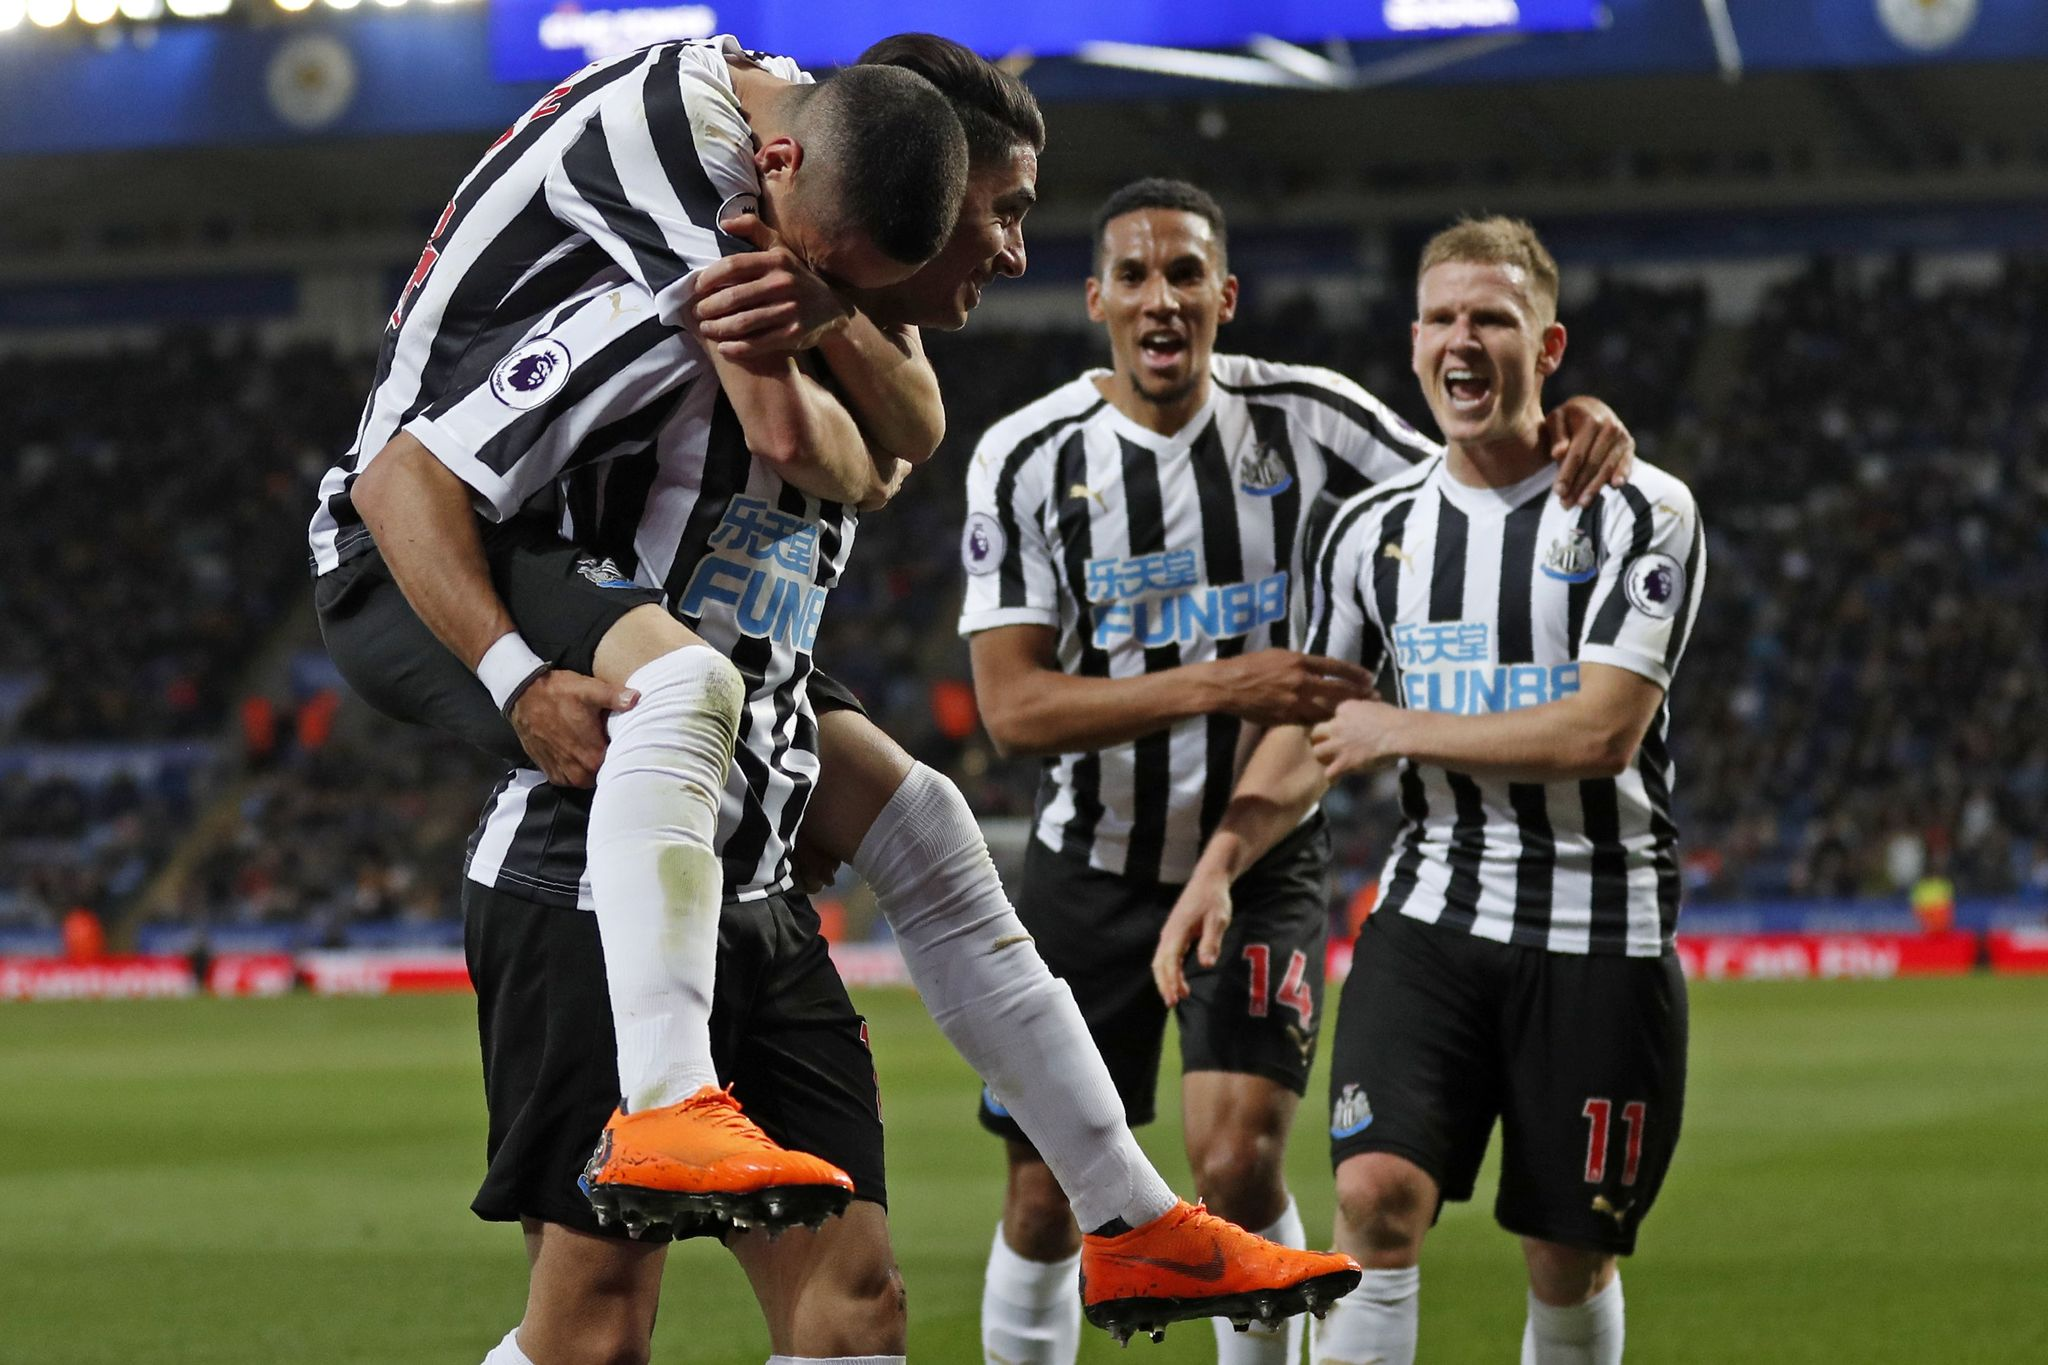 Newcastle Uniteds Spanish striker <HIT>Ayoze</HIT> Perez (2nd L) celebrates with teammates after scoring the opening goal of the English Premier League football match between Leicester City and Newcastle United at King Power Stadium in Leicester, central England on April 12, 2019. (Photo by Adrian DENNIS / AFP) / RESTRICTED TO EDITORIAL USE. No use with unauthorized audio, video, data, fixture lists, club/league logos or live services. Online in-match use limited to 120 images. An additional 40 images may be used in extra time. No video emulation. Social media in-match use limited to 120 images. An additional 40 images may be used in extra time. No use in betting publications, games or single club/league/player publications. /